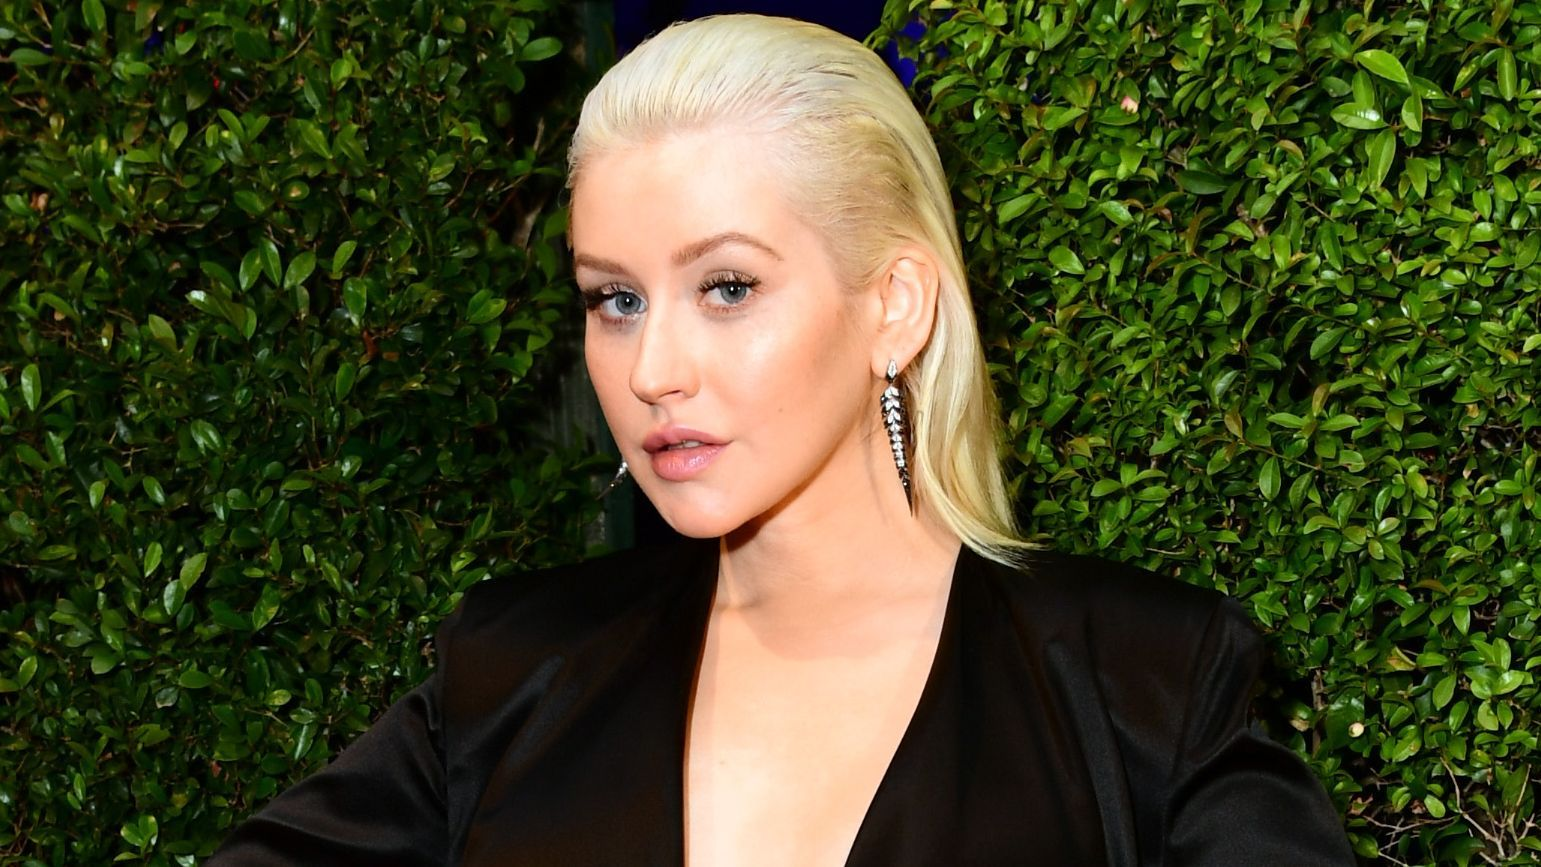 Christina Aguilera Kicks Off Her New Era With A No-Makeup ...